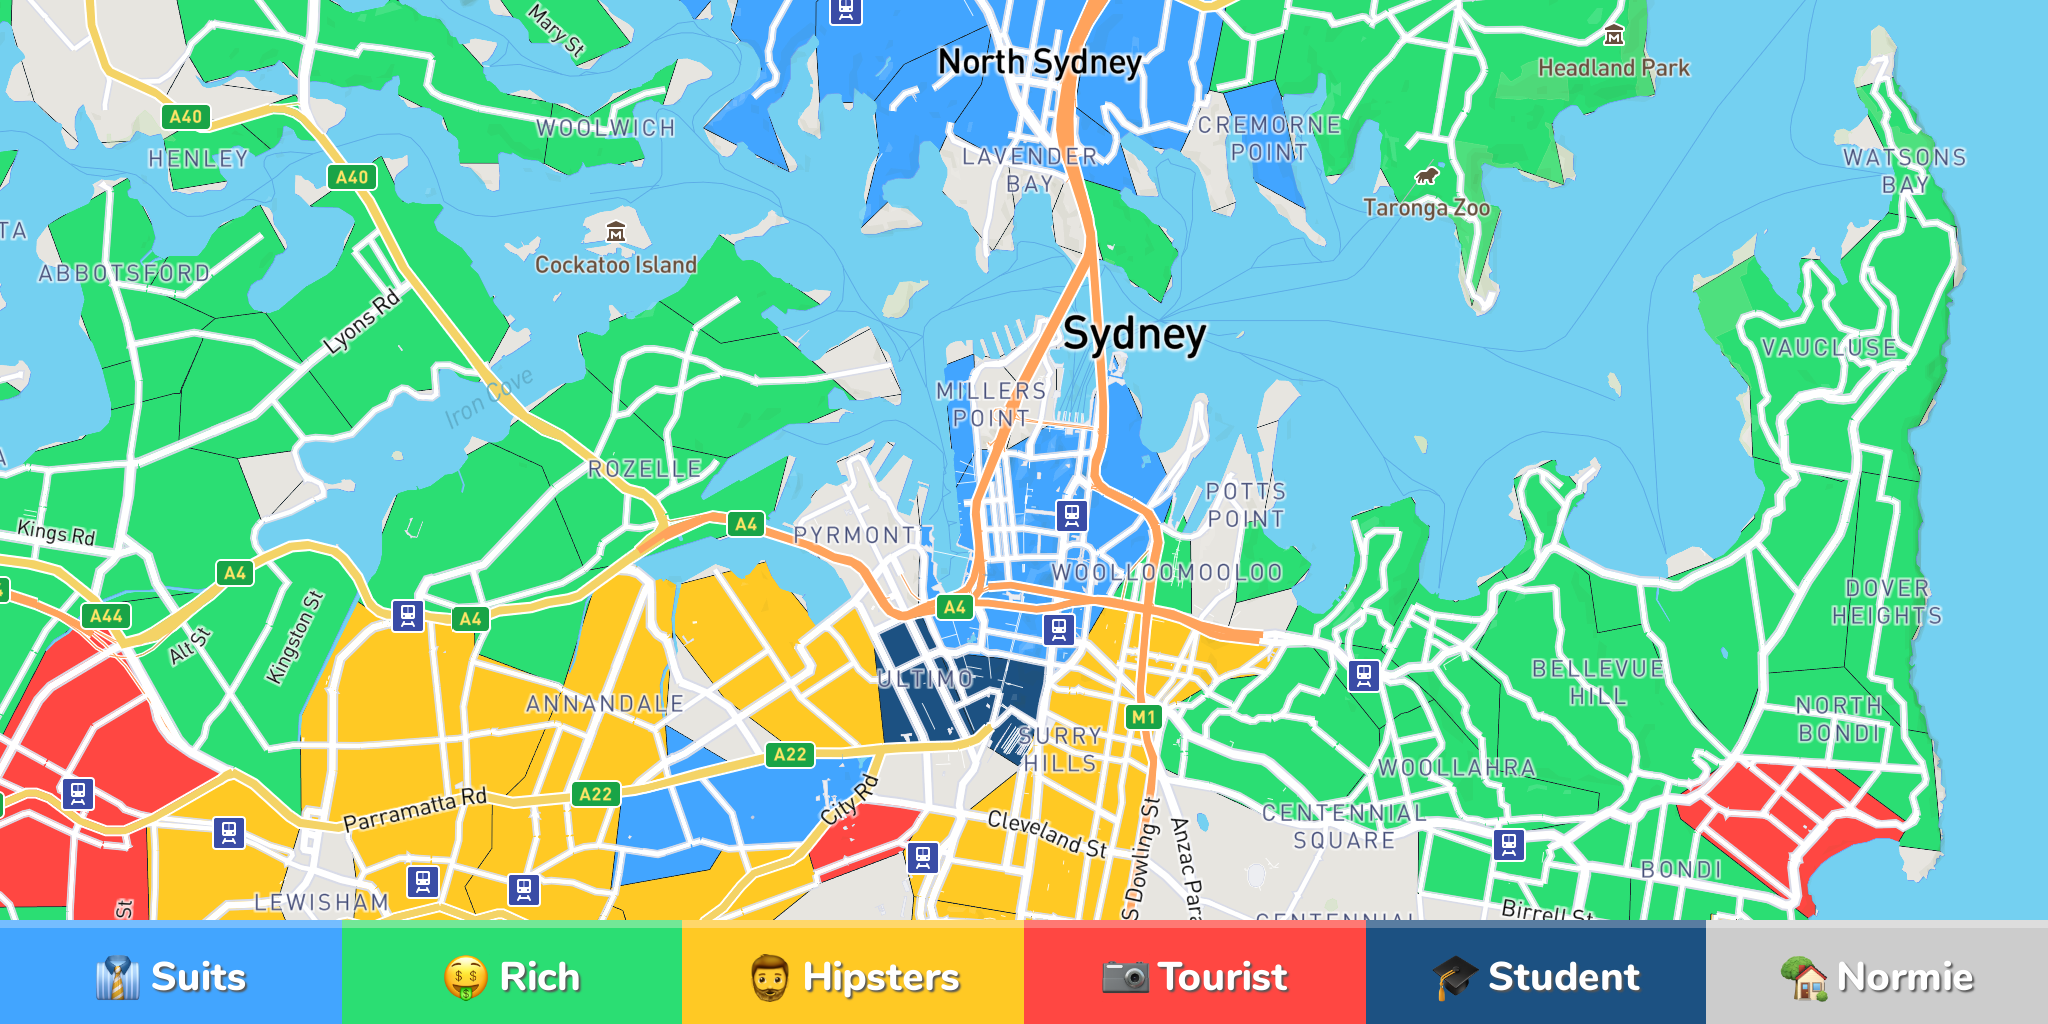 Where to Stay in Sydney - Neighborhoods & Area Guide by 451